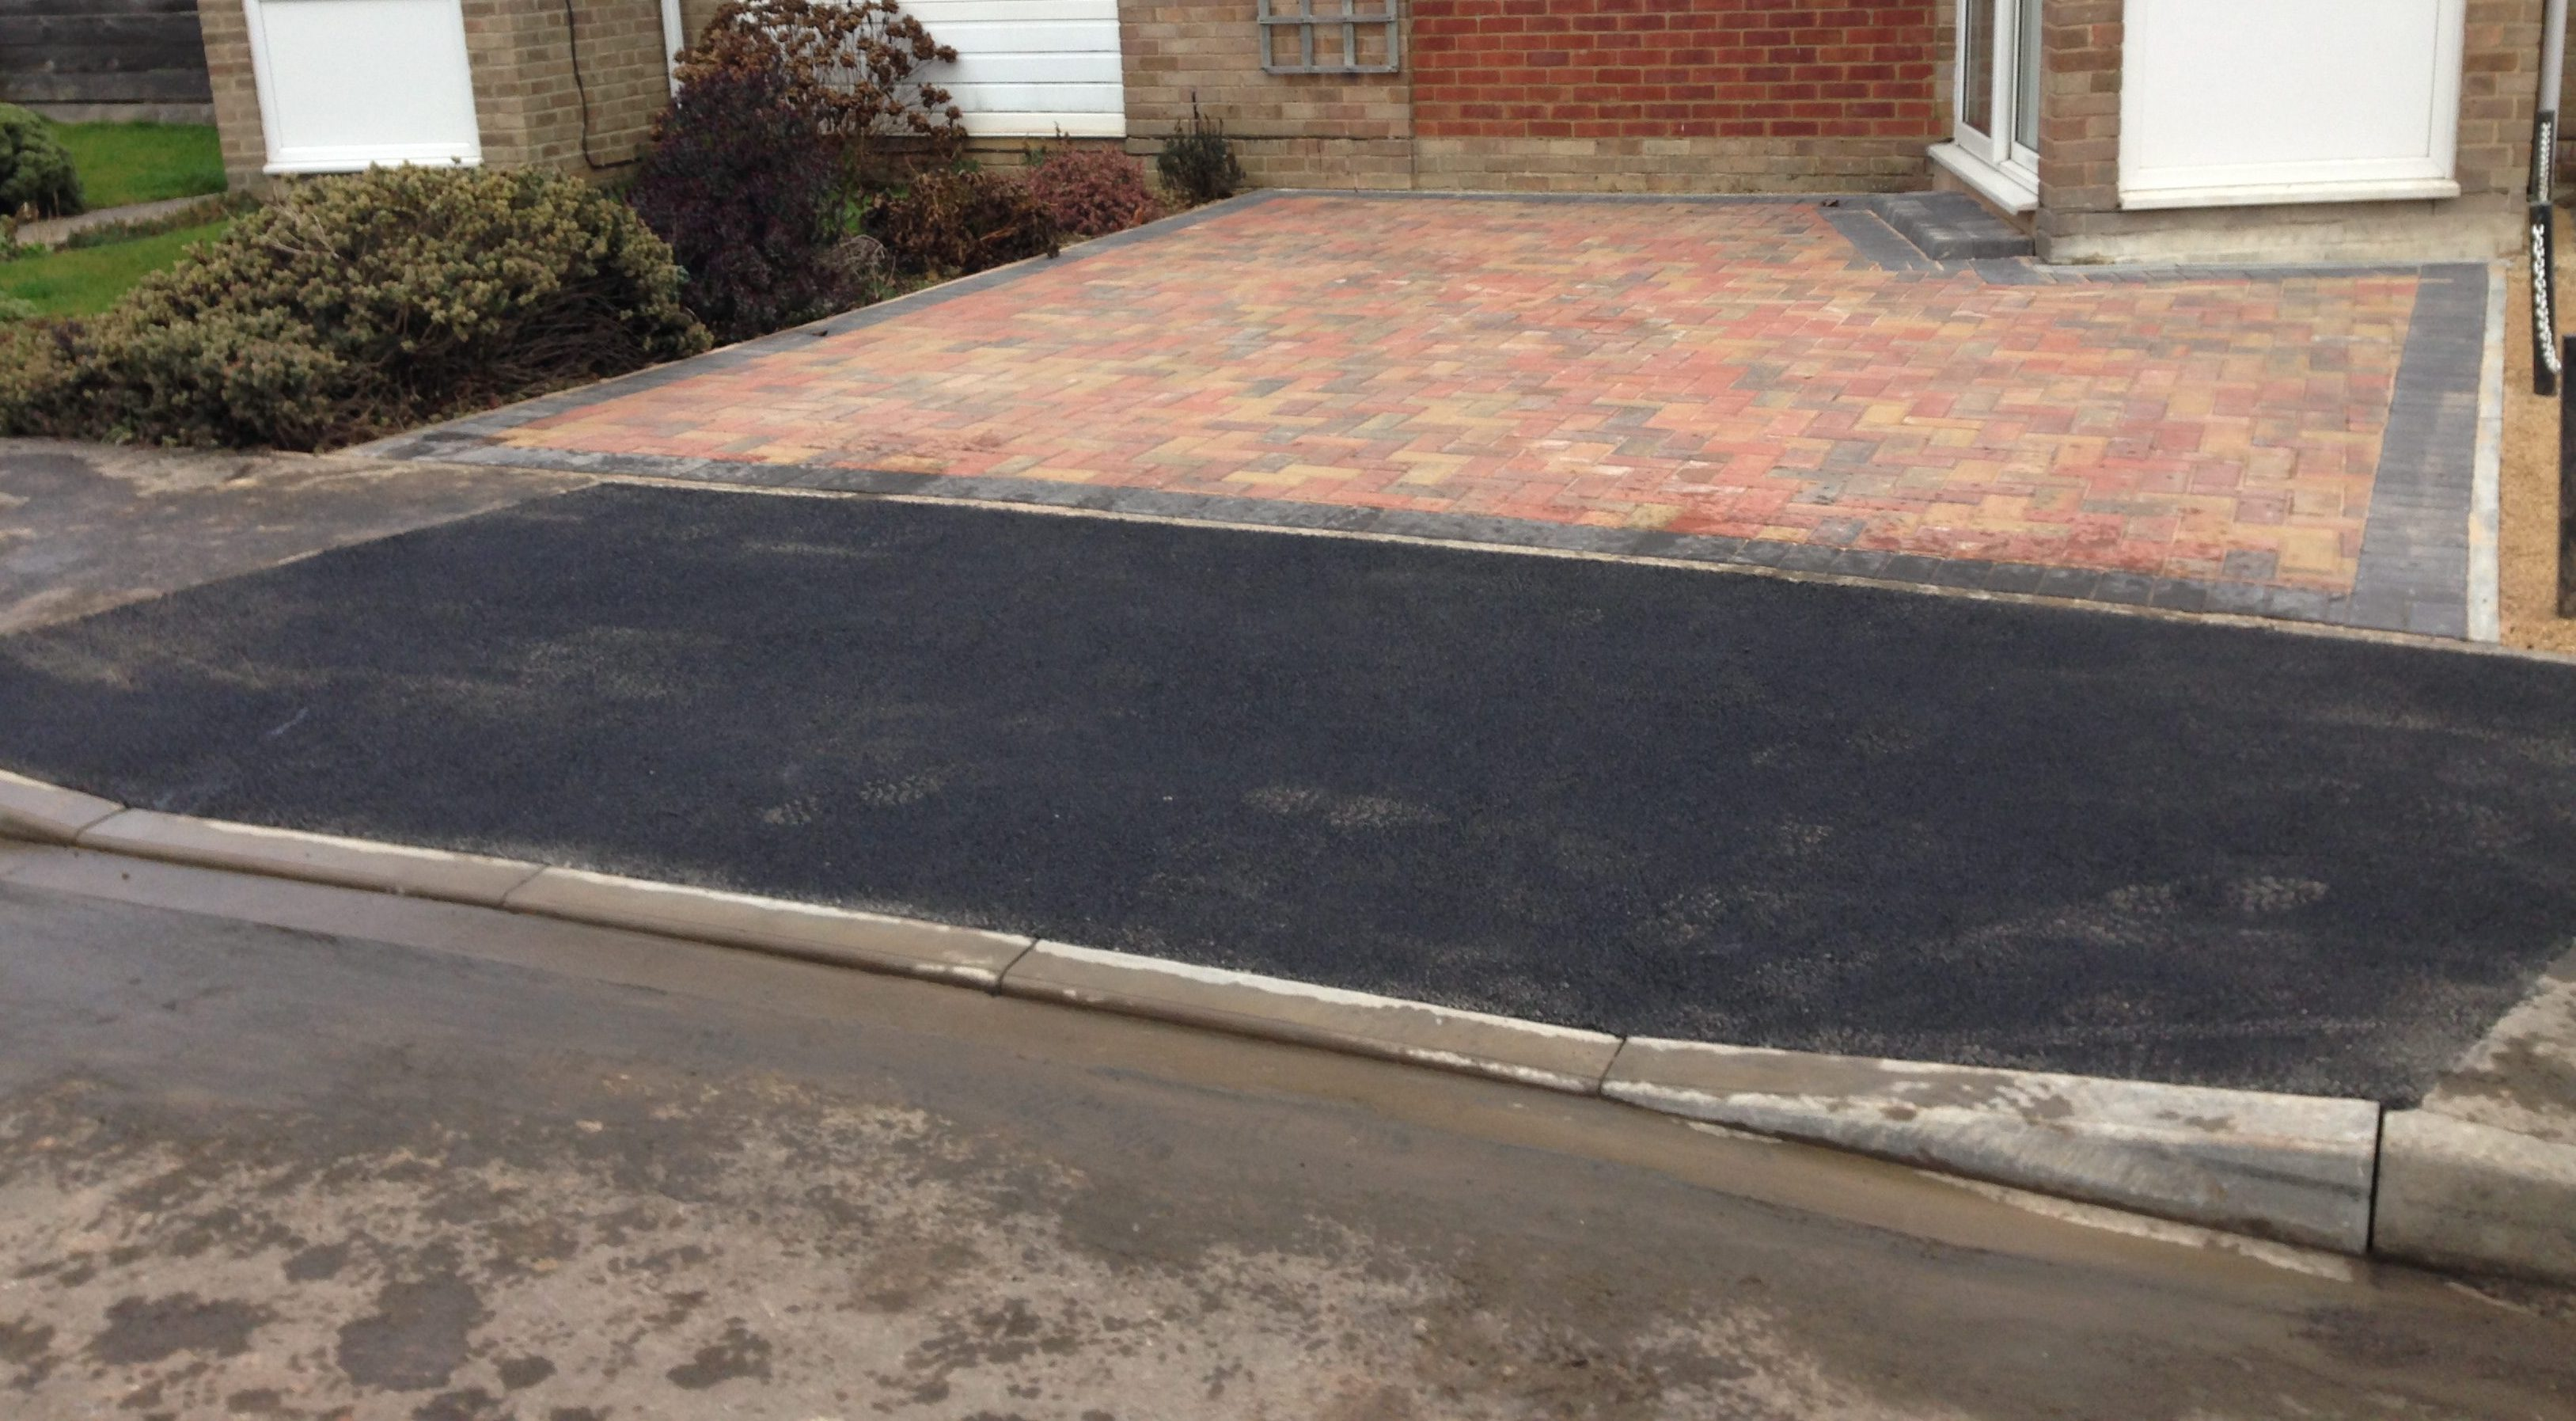 Block paved driveway with step, and dropped kerb